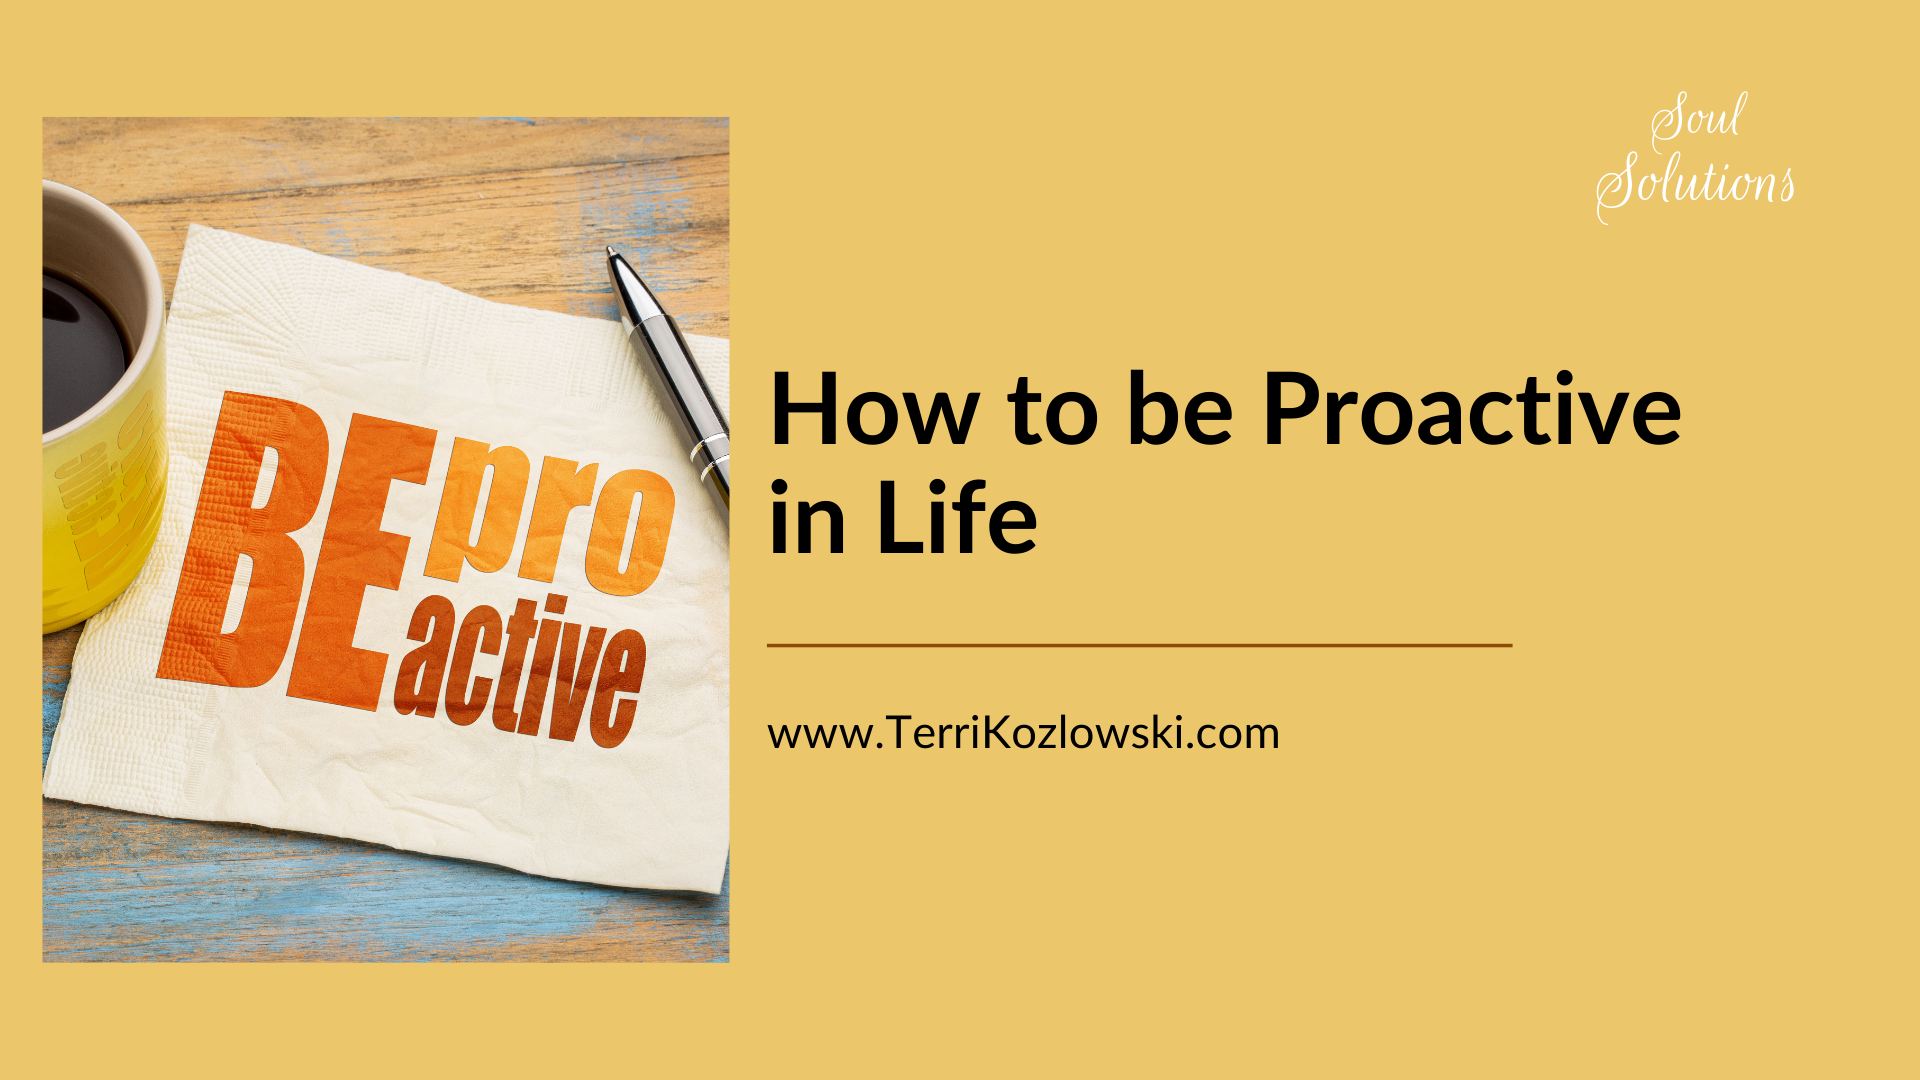 Proactive means responding well